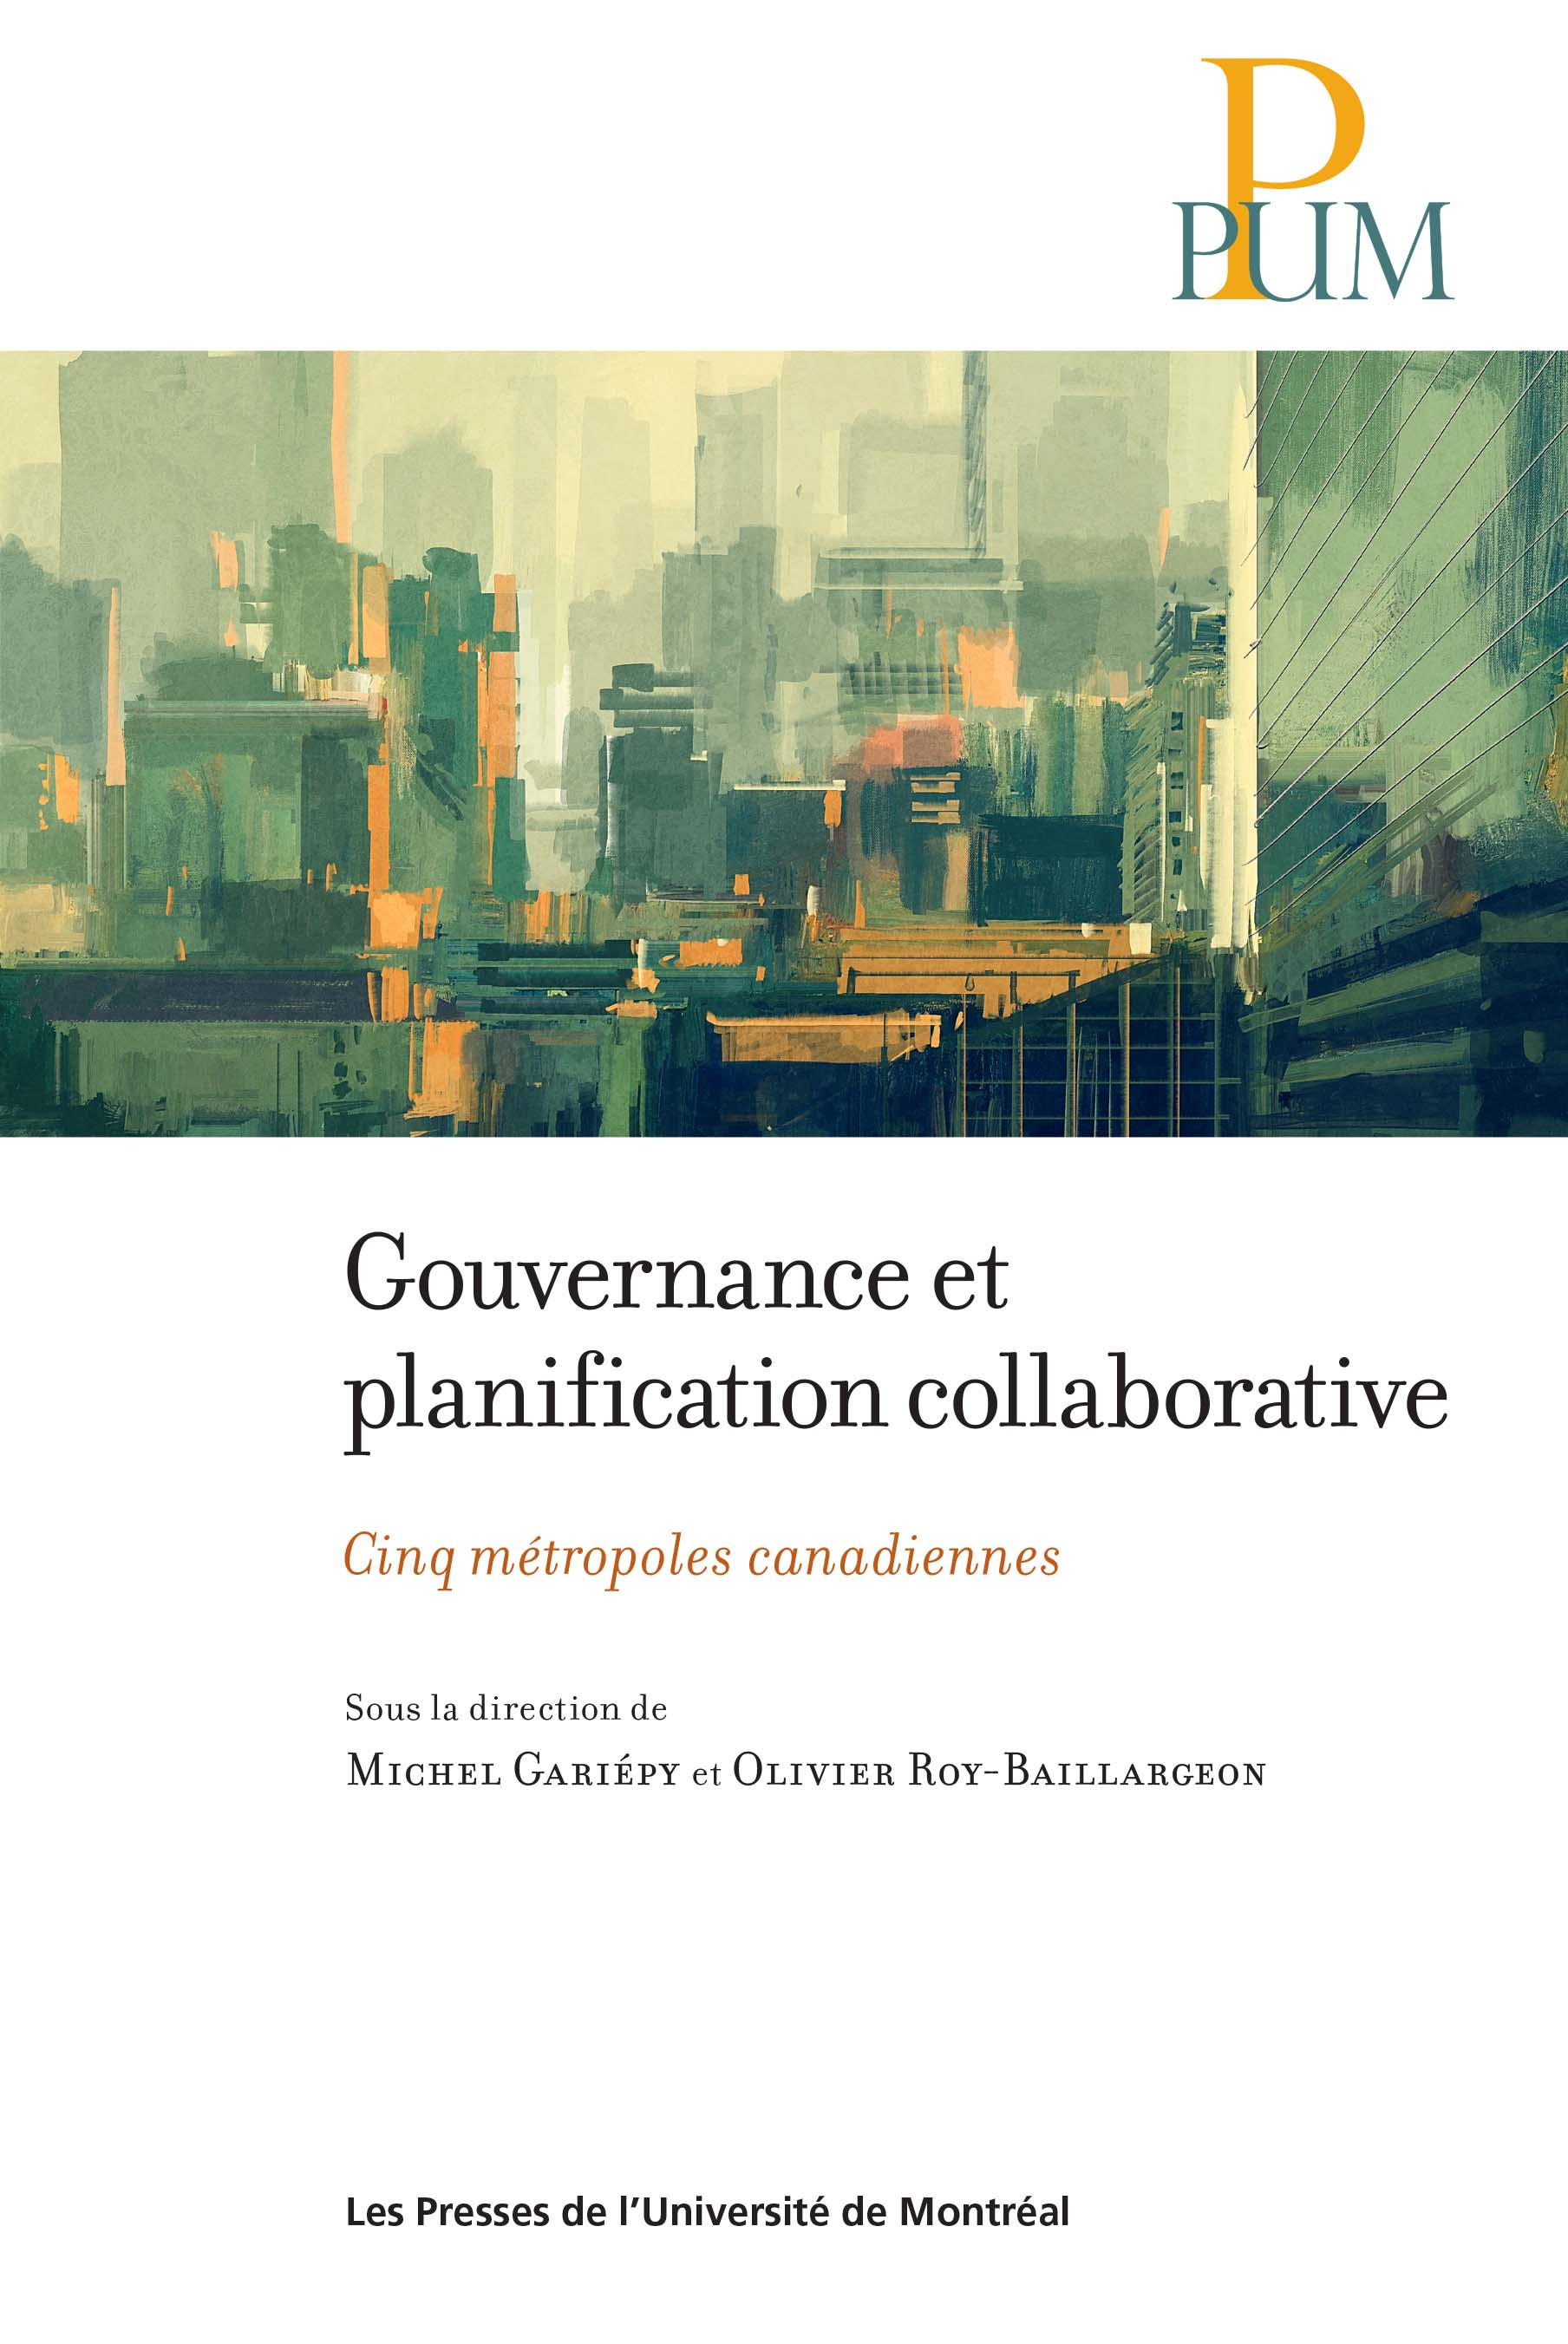 Gouvernance et planification collaborative